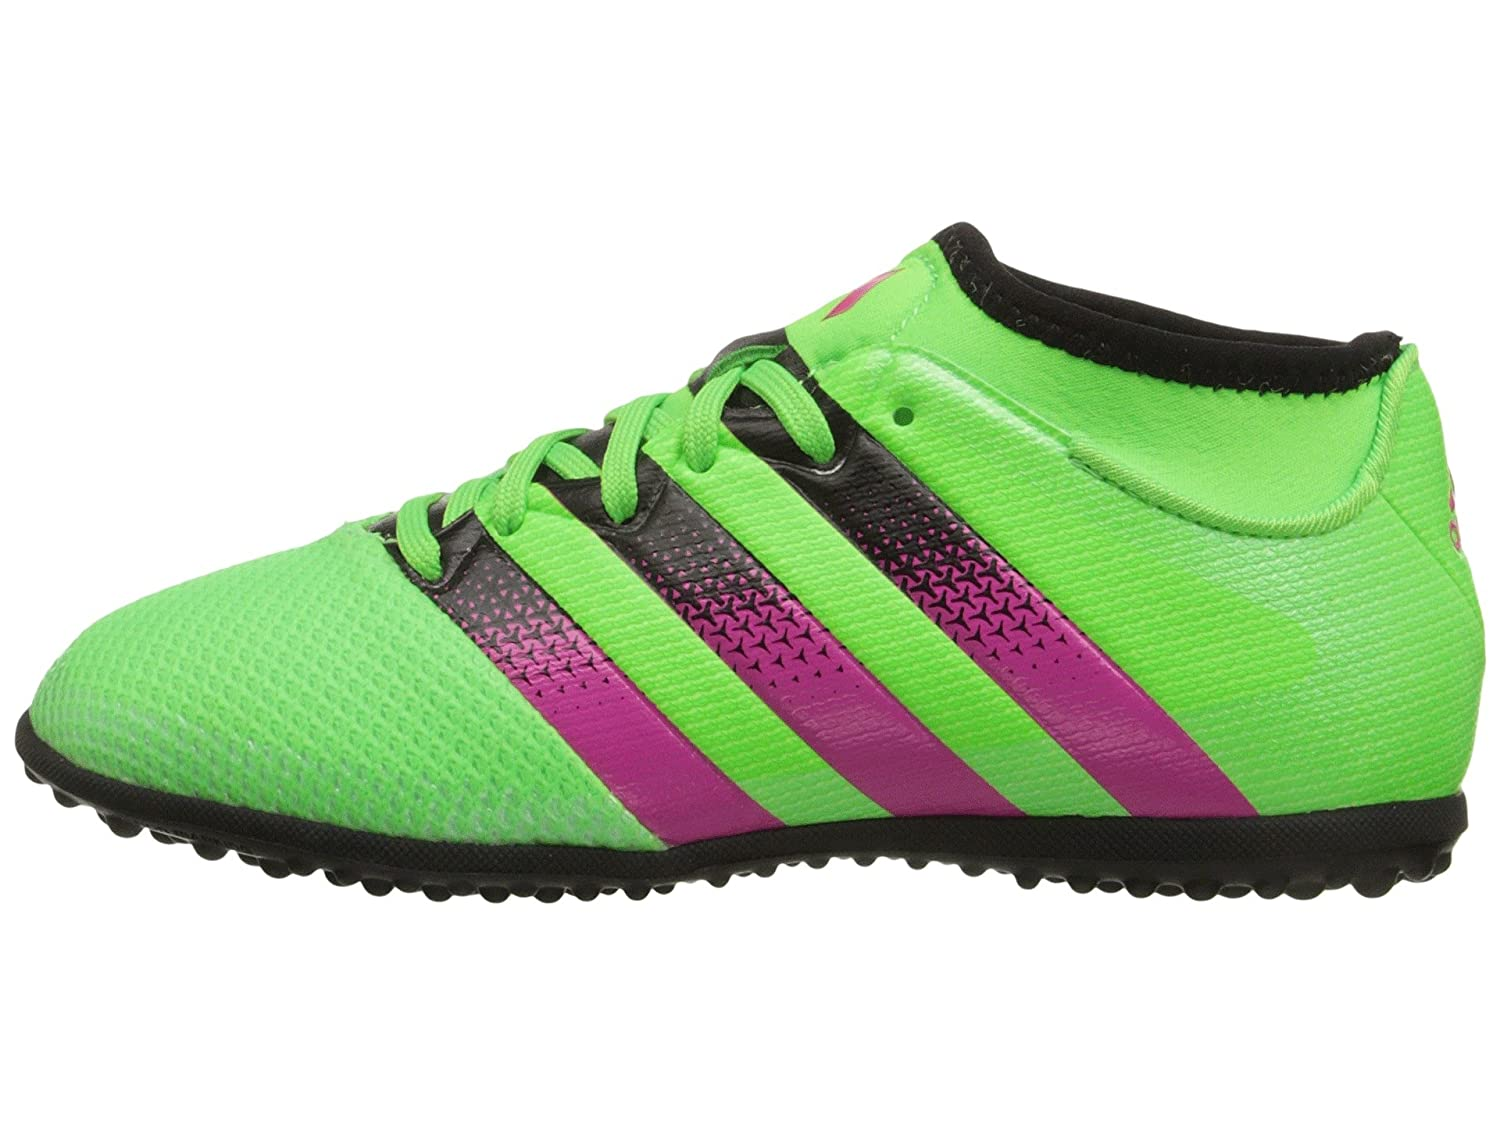 88fa974c701b Adidas Performance Ace 16.3 Primemesh TF JUNIOR (Solar Green Shock  Pink Core Black) (US size) (US size-Y 6Y)  Amazon.co.uk  Sports   Outdoors